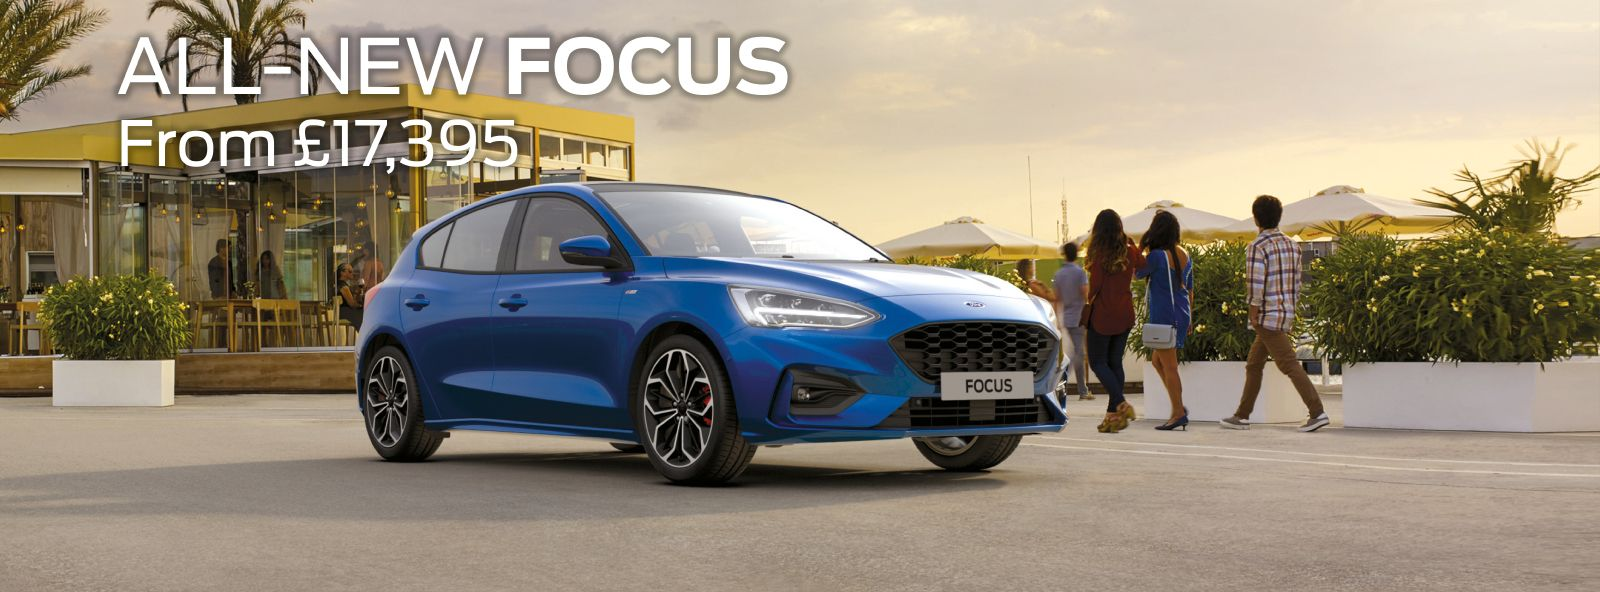 All new ford focus.